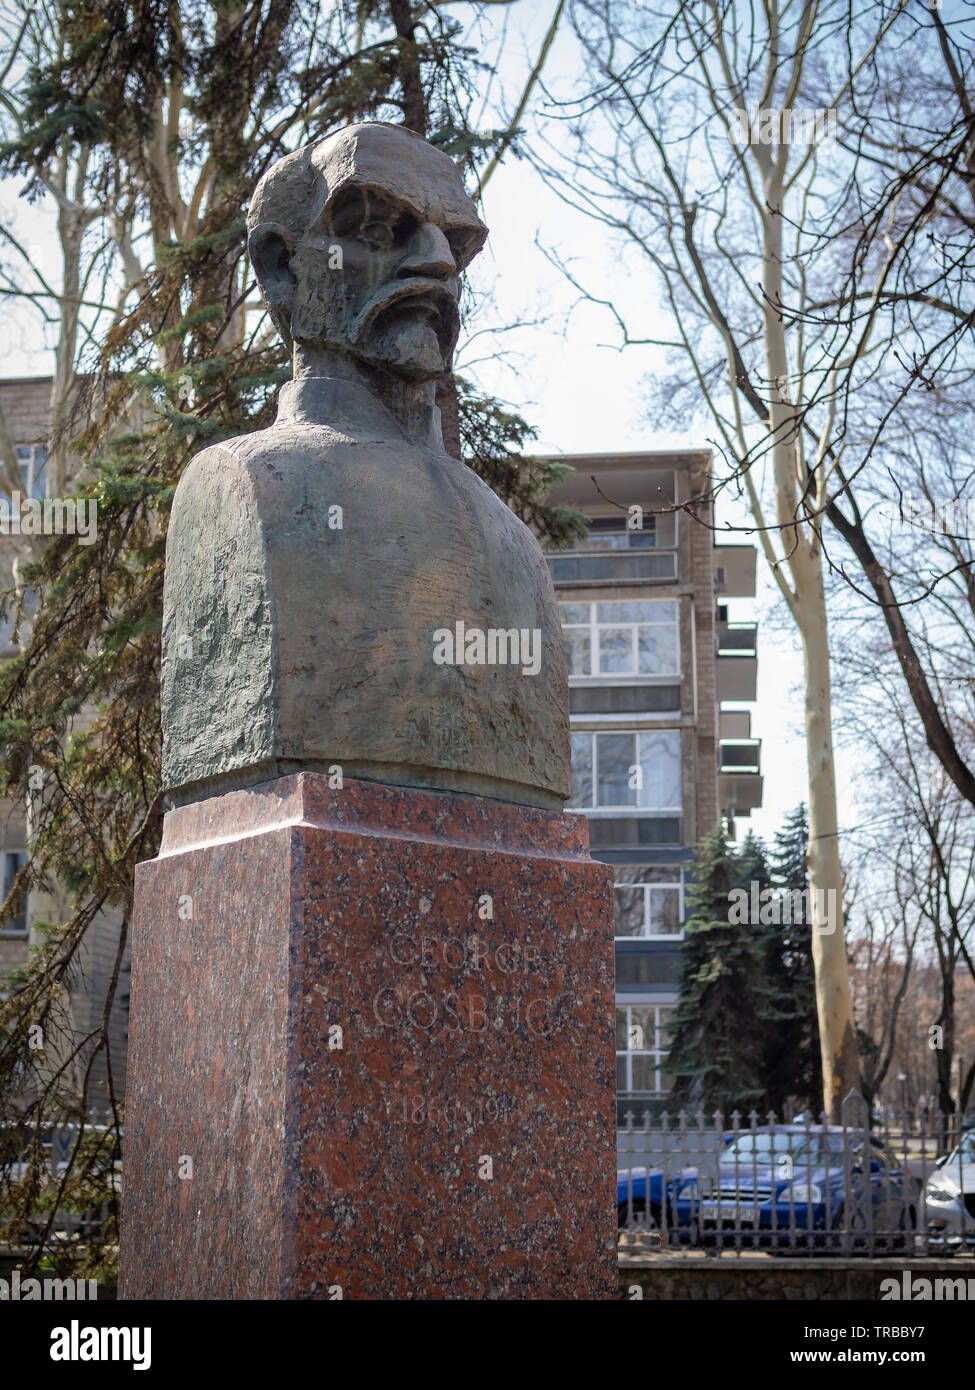 CHISINAU, MOLDOVA-MARCH 21, 2019: George Cosbuc bust by Constantin Popovici in the Alley of Classics - Stock Image